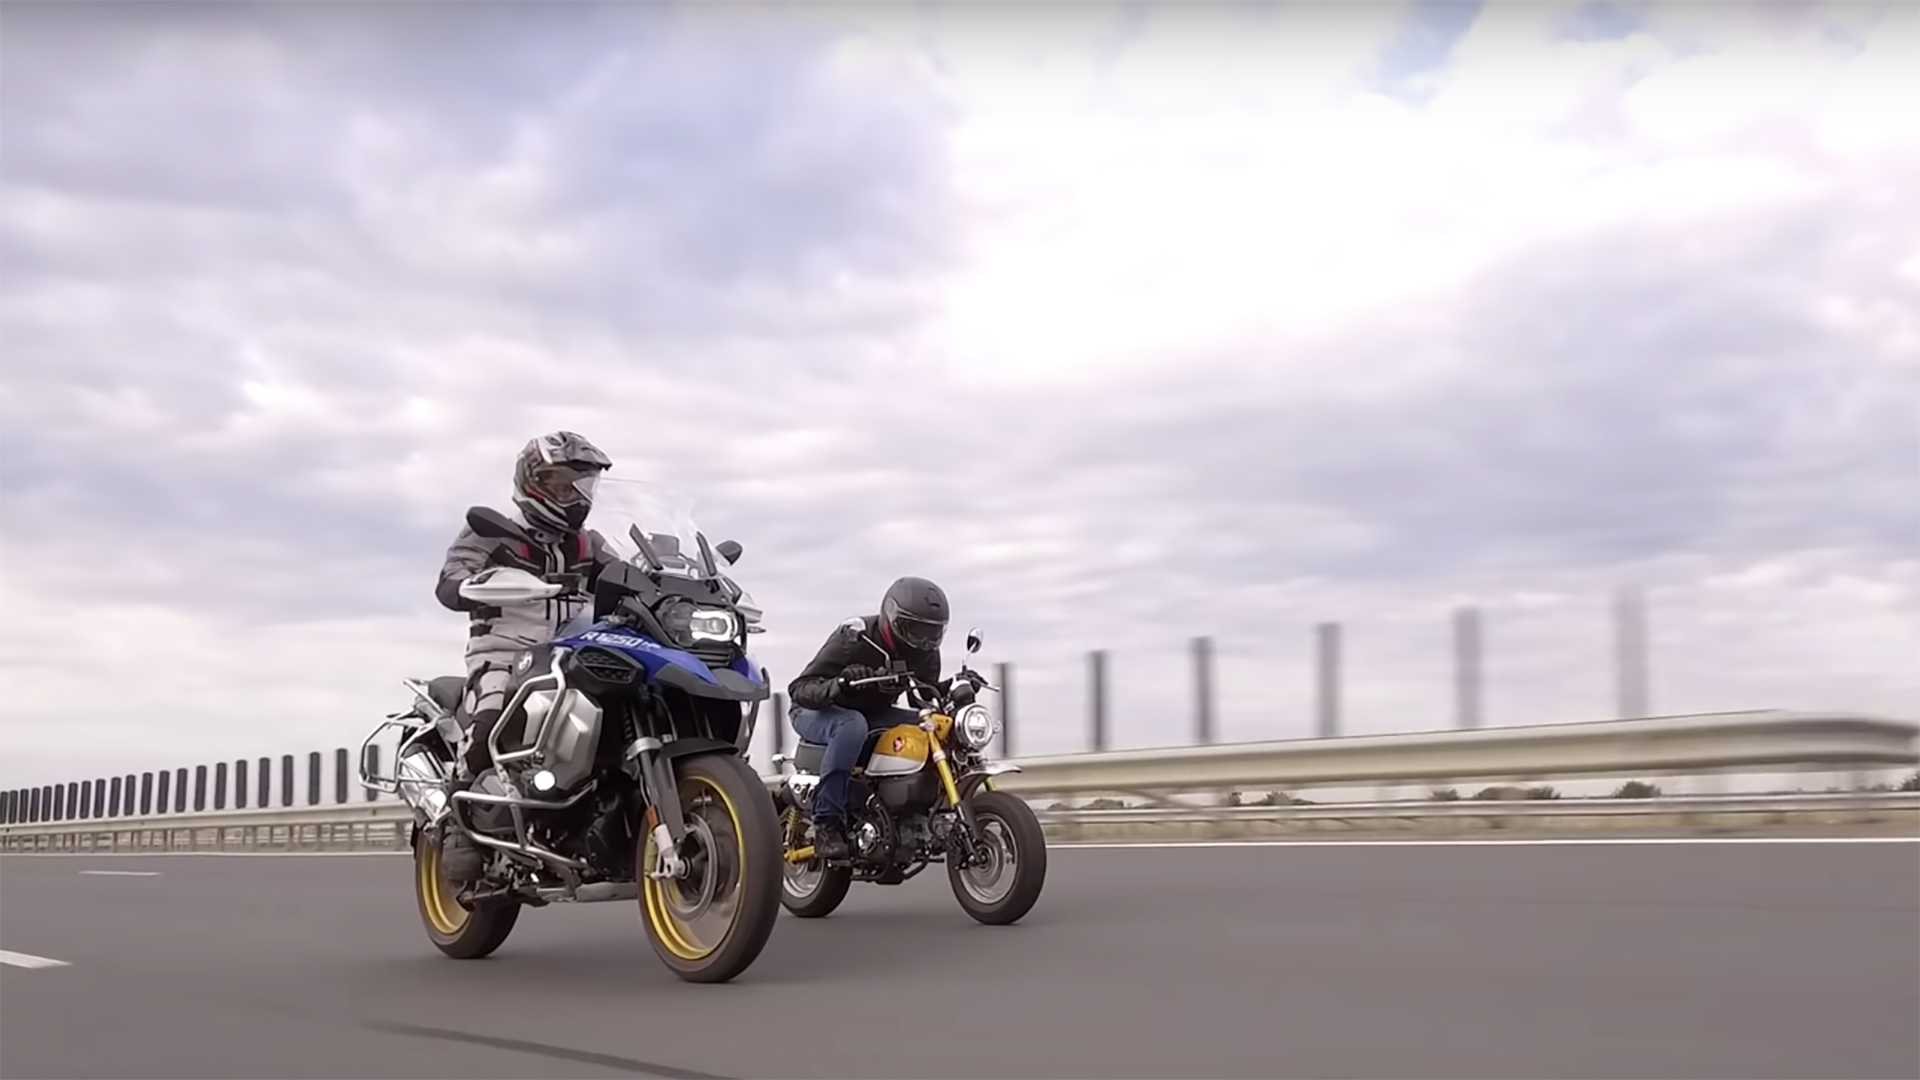 BMW R 1250 GS Vs Honda Monkey Is The Only Review You Need